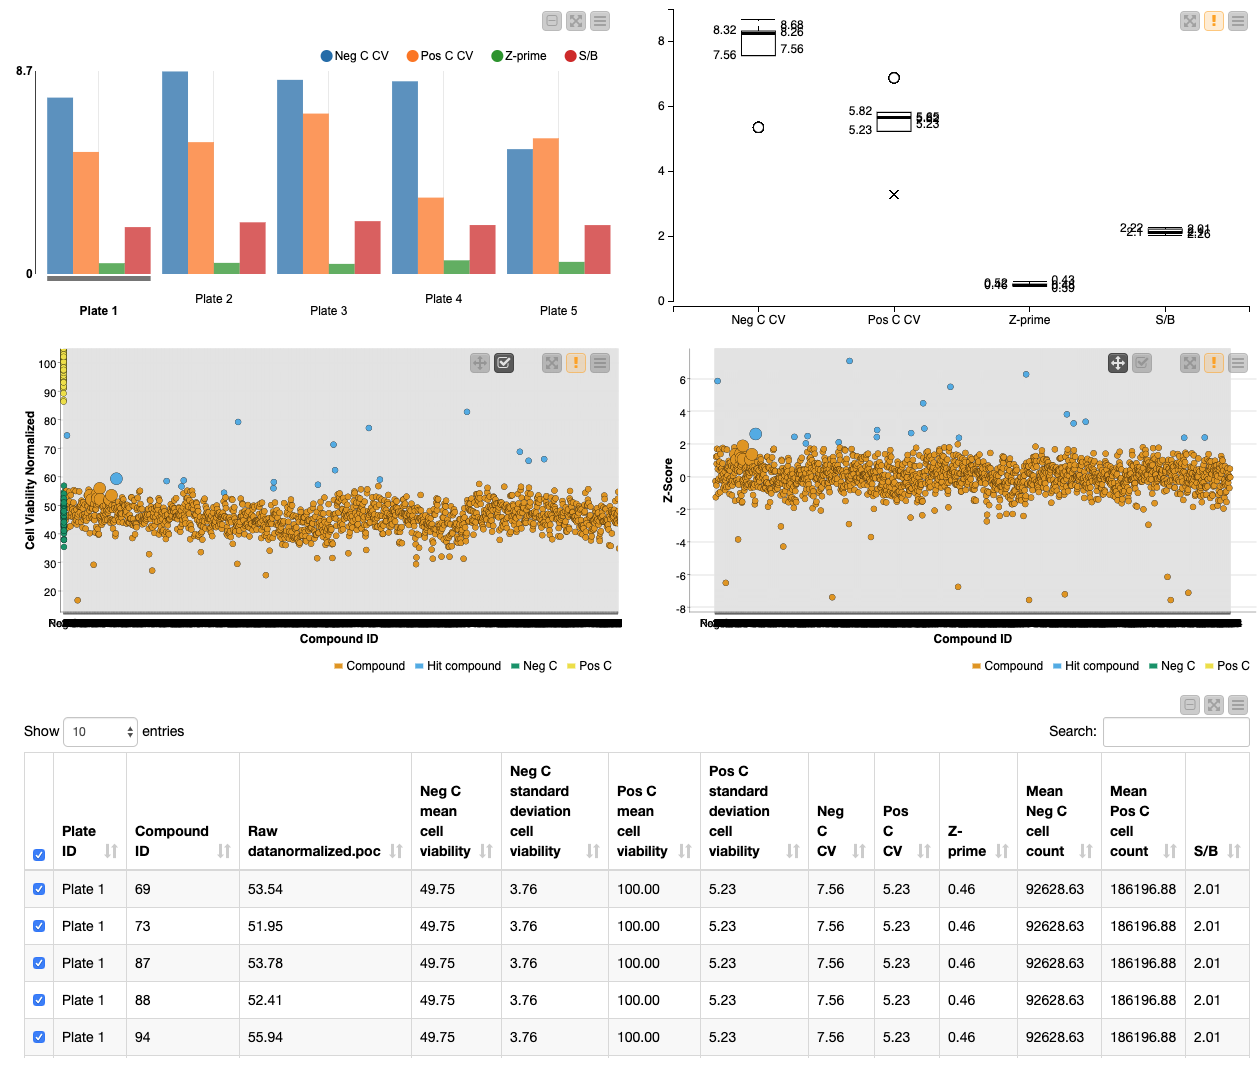 A workflow for high-throughput screening, data analysis, processing, and hit identification